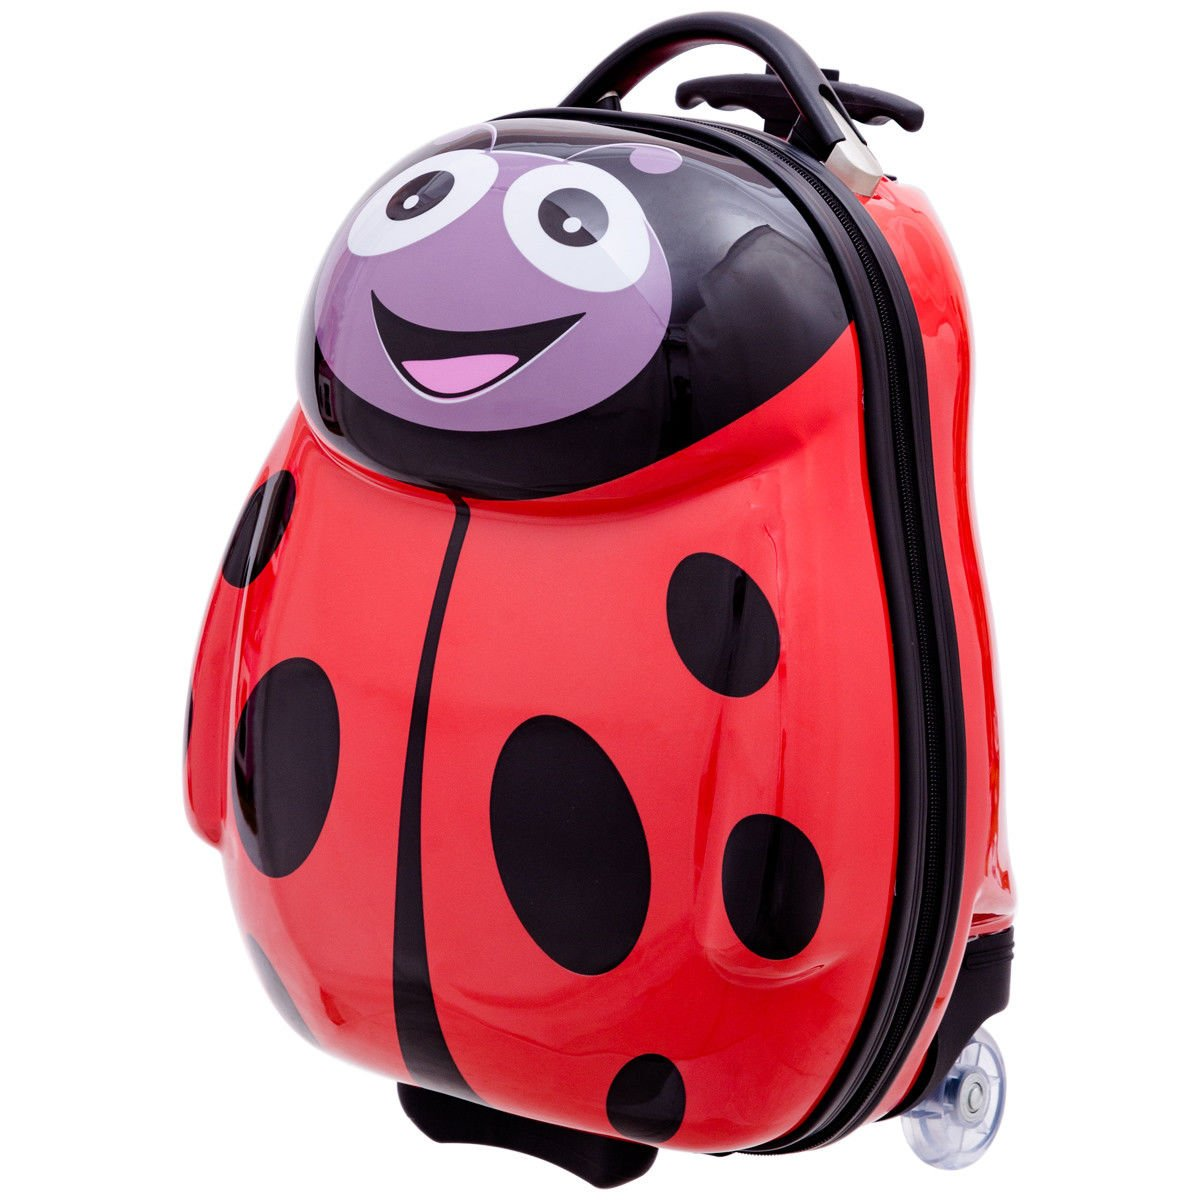 Goplus 2Pc 13'' 19'' Kids Carry On Luggage Set Travel Trolley Suitcase (Ladybug) by Goplus (Image #9)